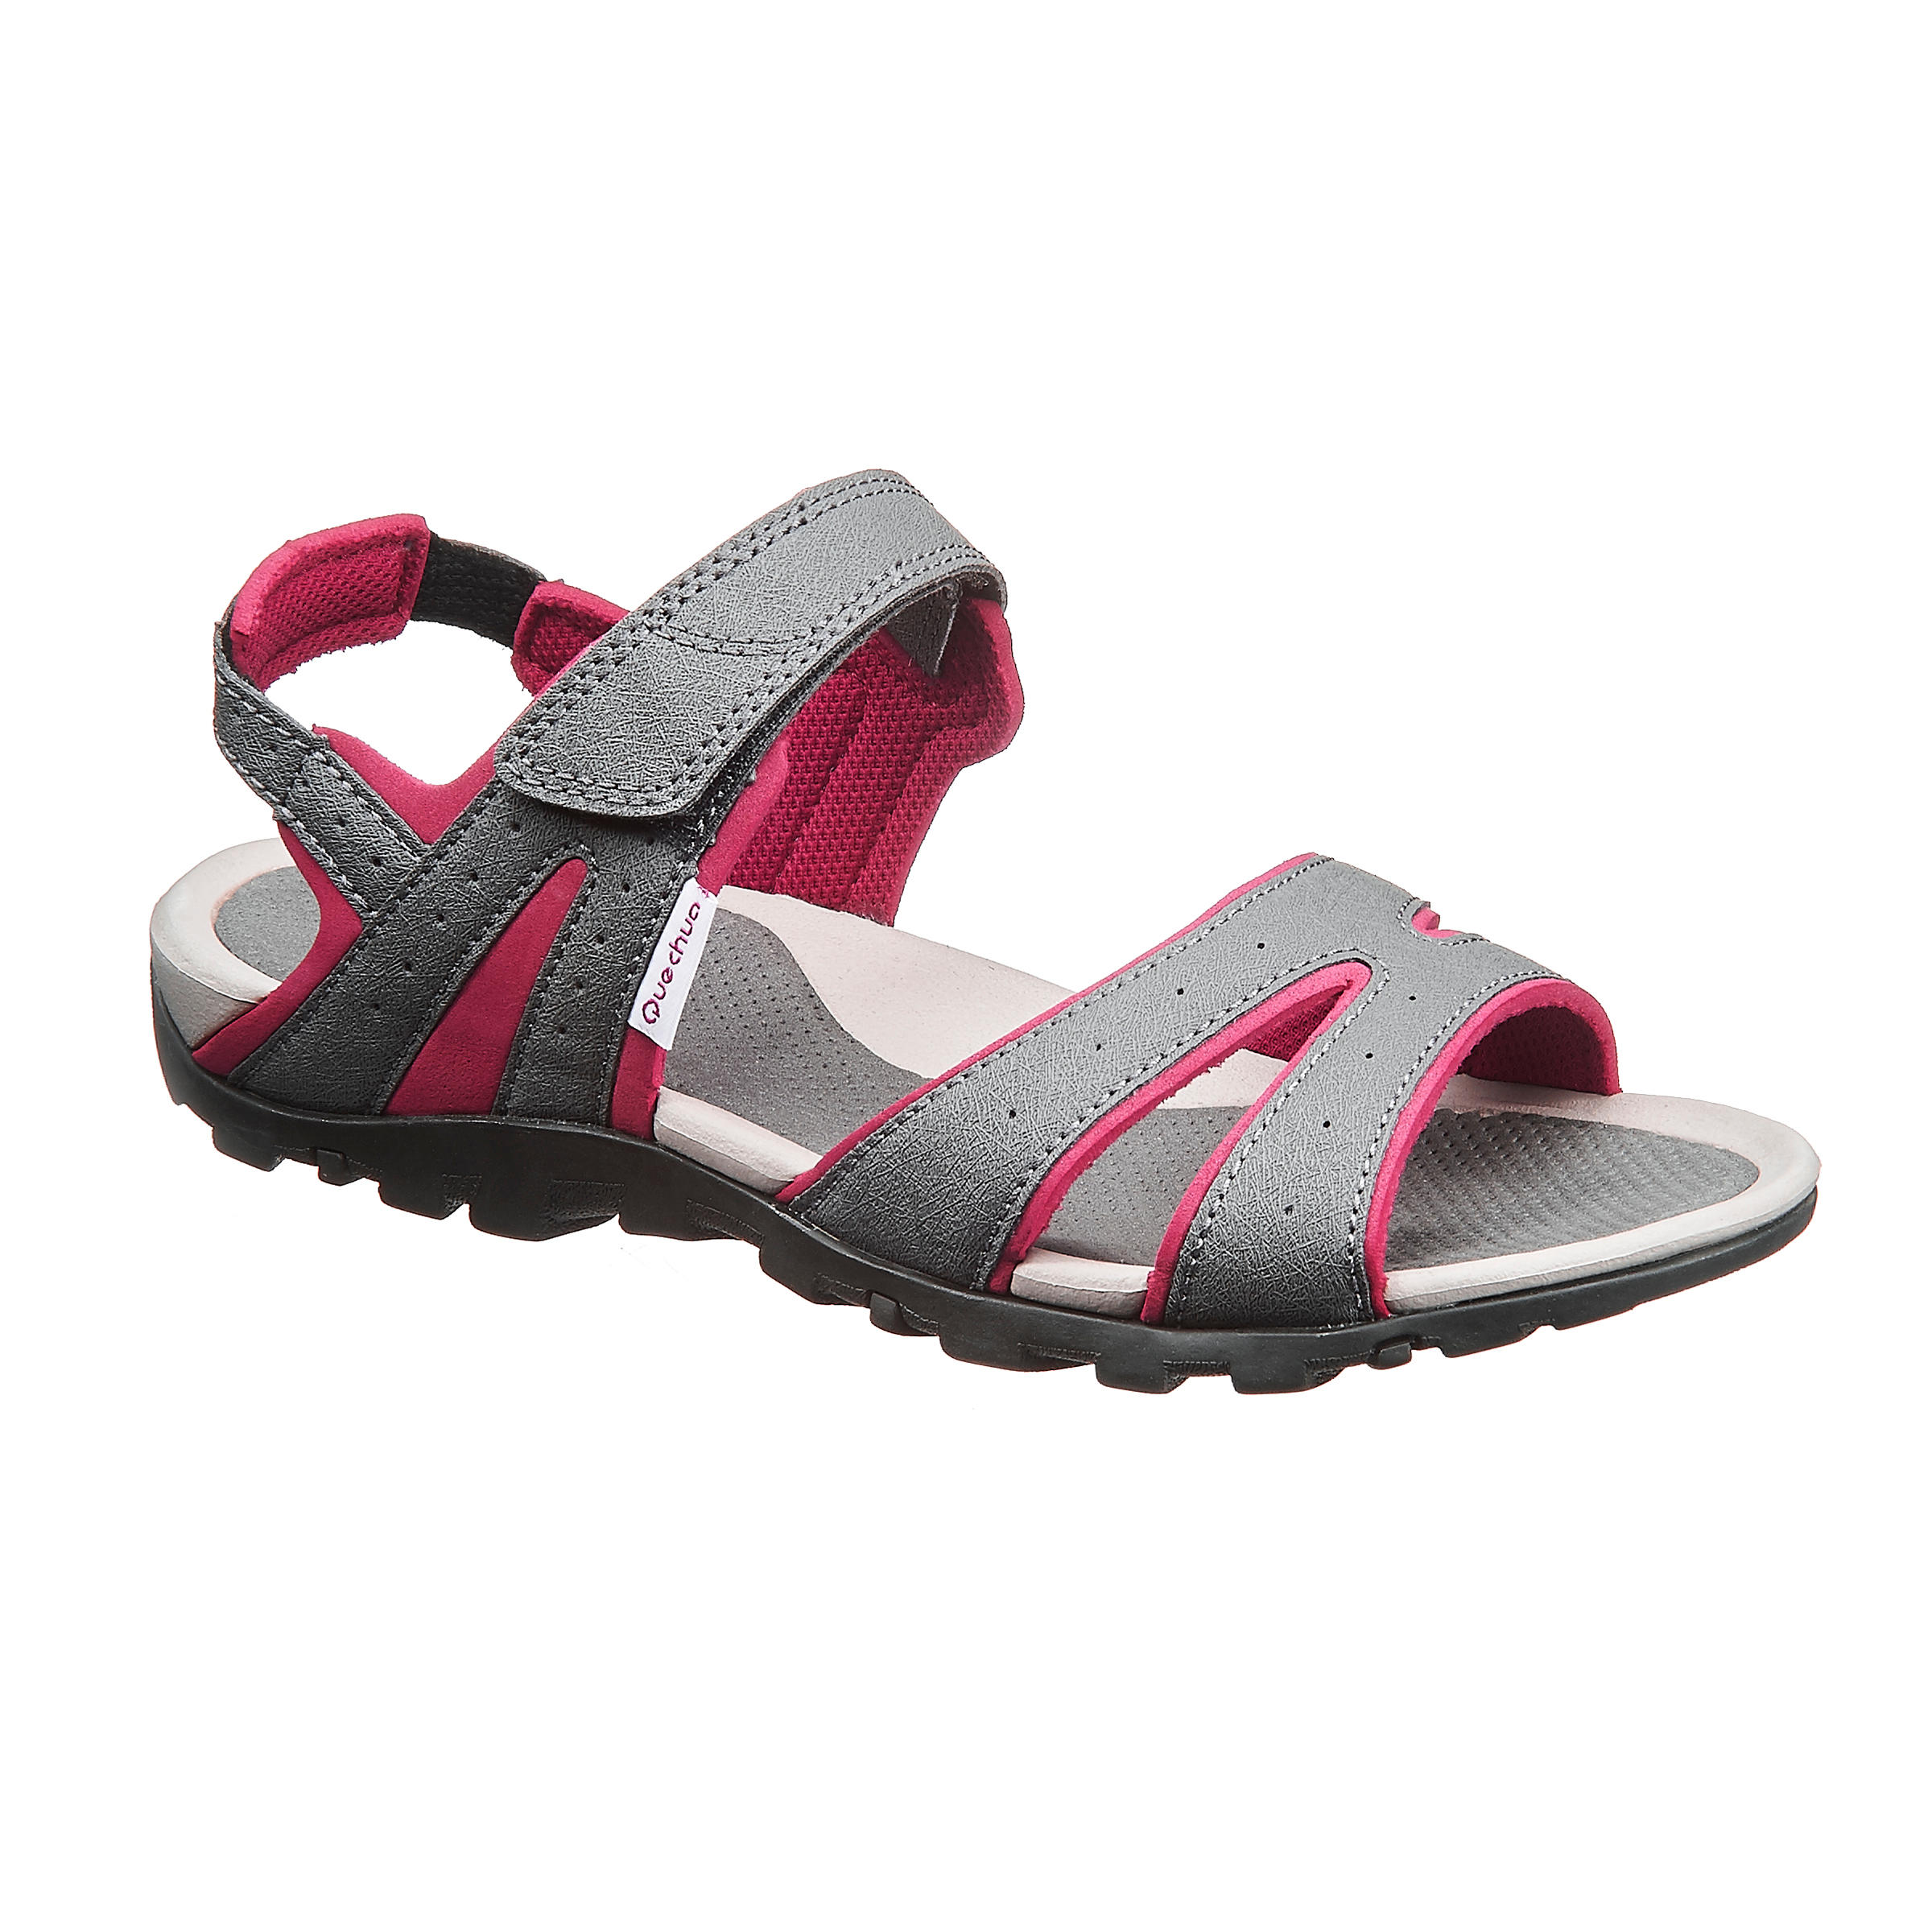 Hiking Greypink 50 Women Sandal OnlineArpenaz For tQhdsr